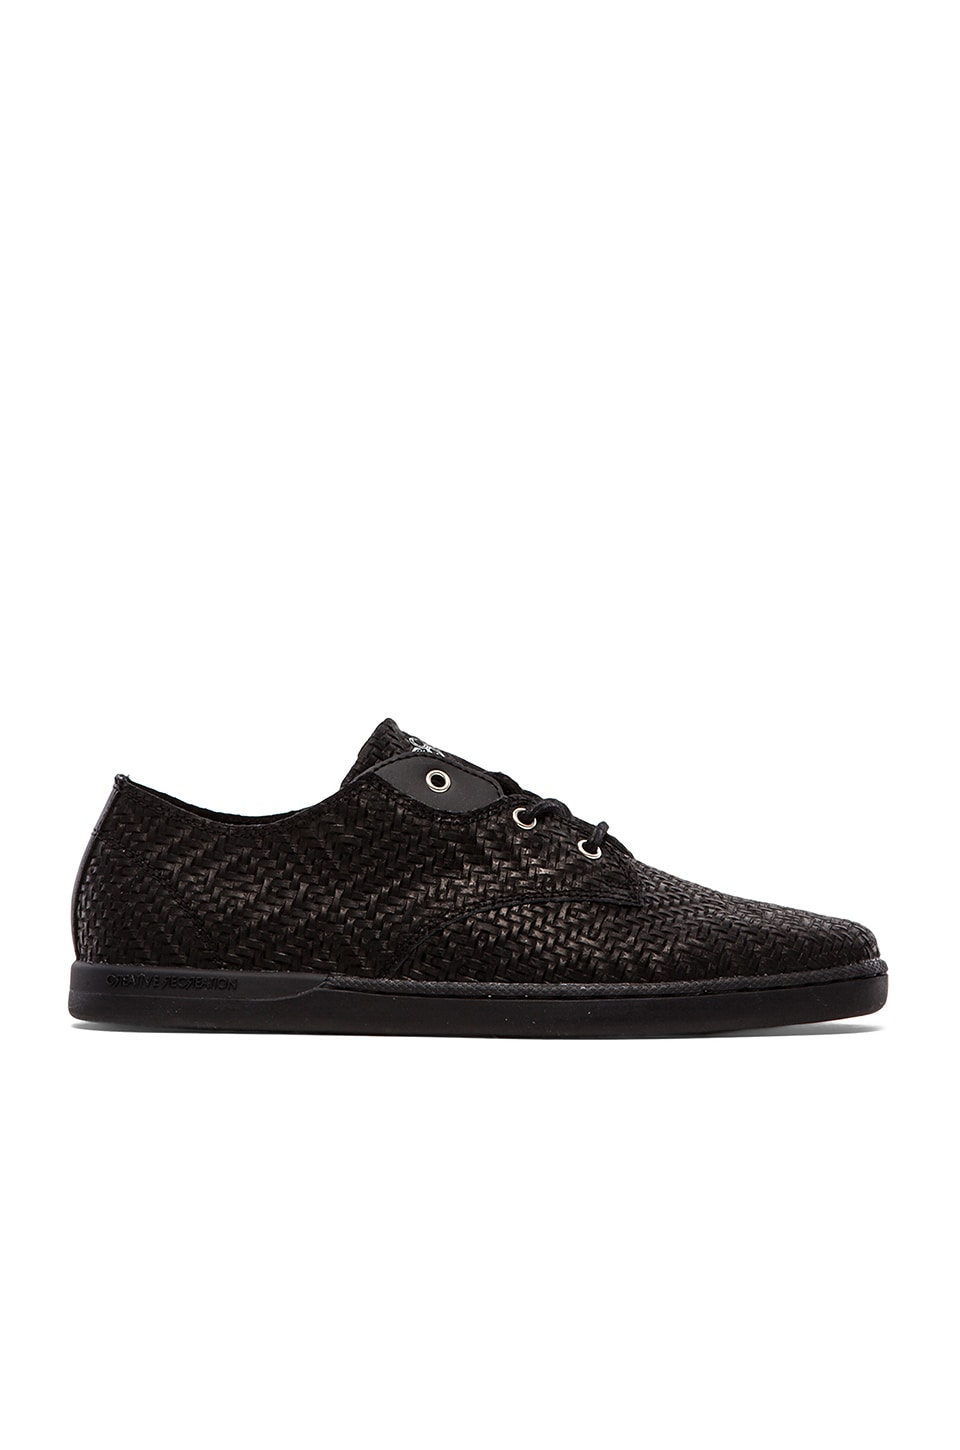 Creative Recreation Vito Lo in Black Woven